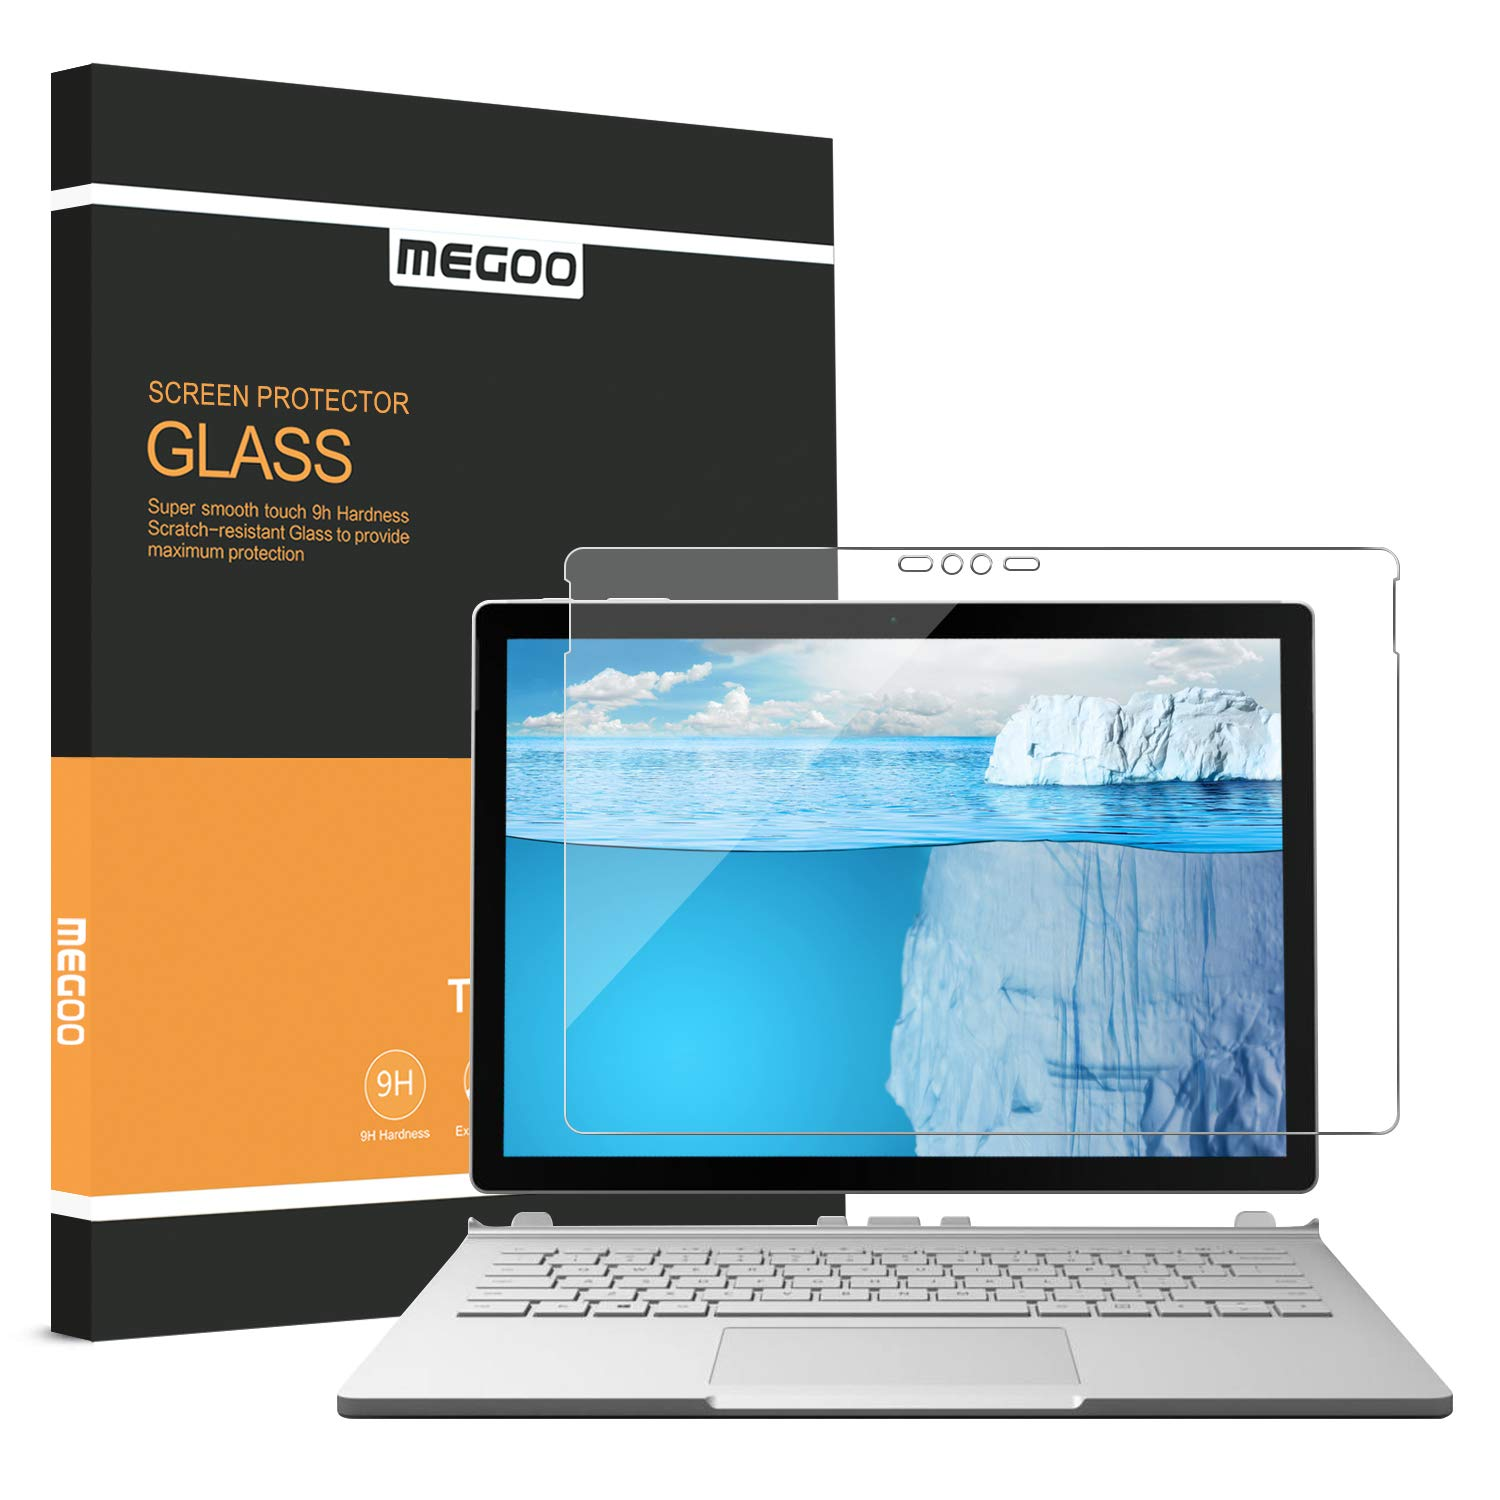 Megoo Surface Book 2 Screen Protector [Tempered Glass], Easy Installation Anti-Scratch Friendly Touching Screen Shield (Updated Version 2017) Also Compatible for Microsoft Surface Book [13.5 Inch]